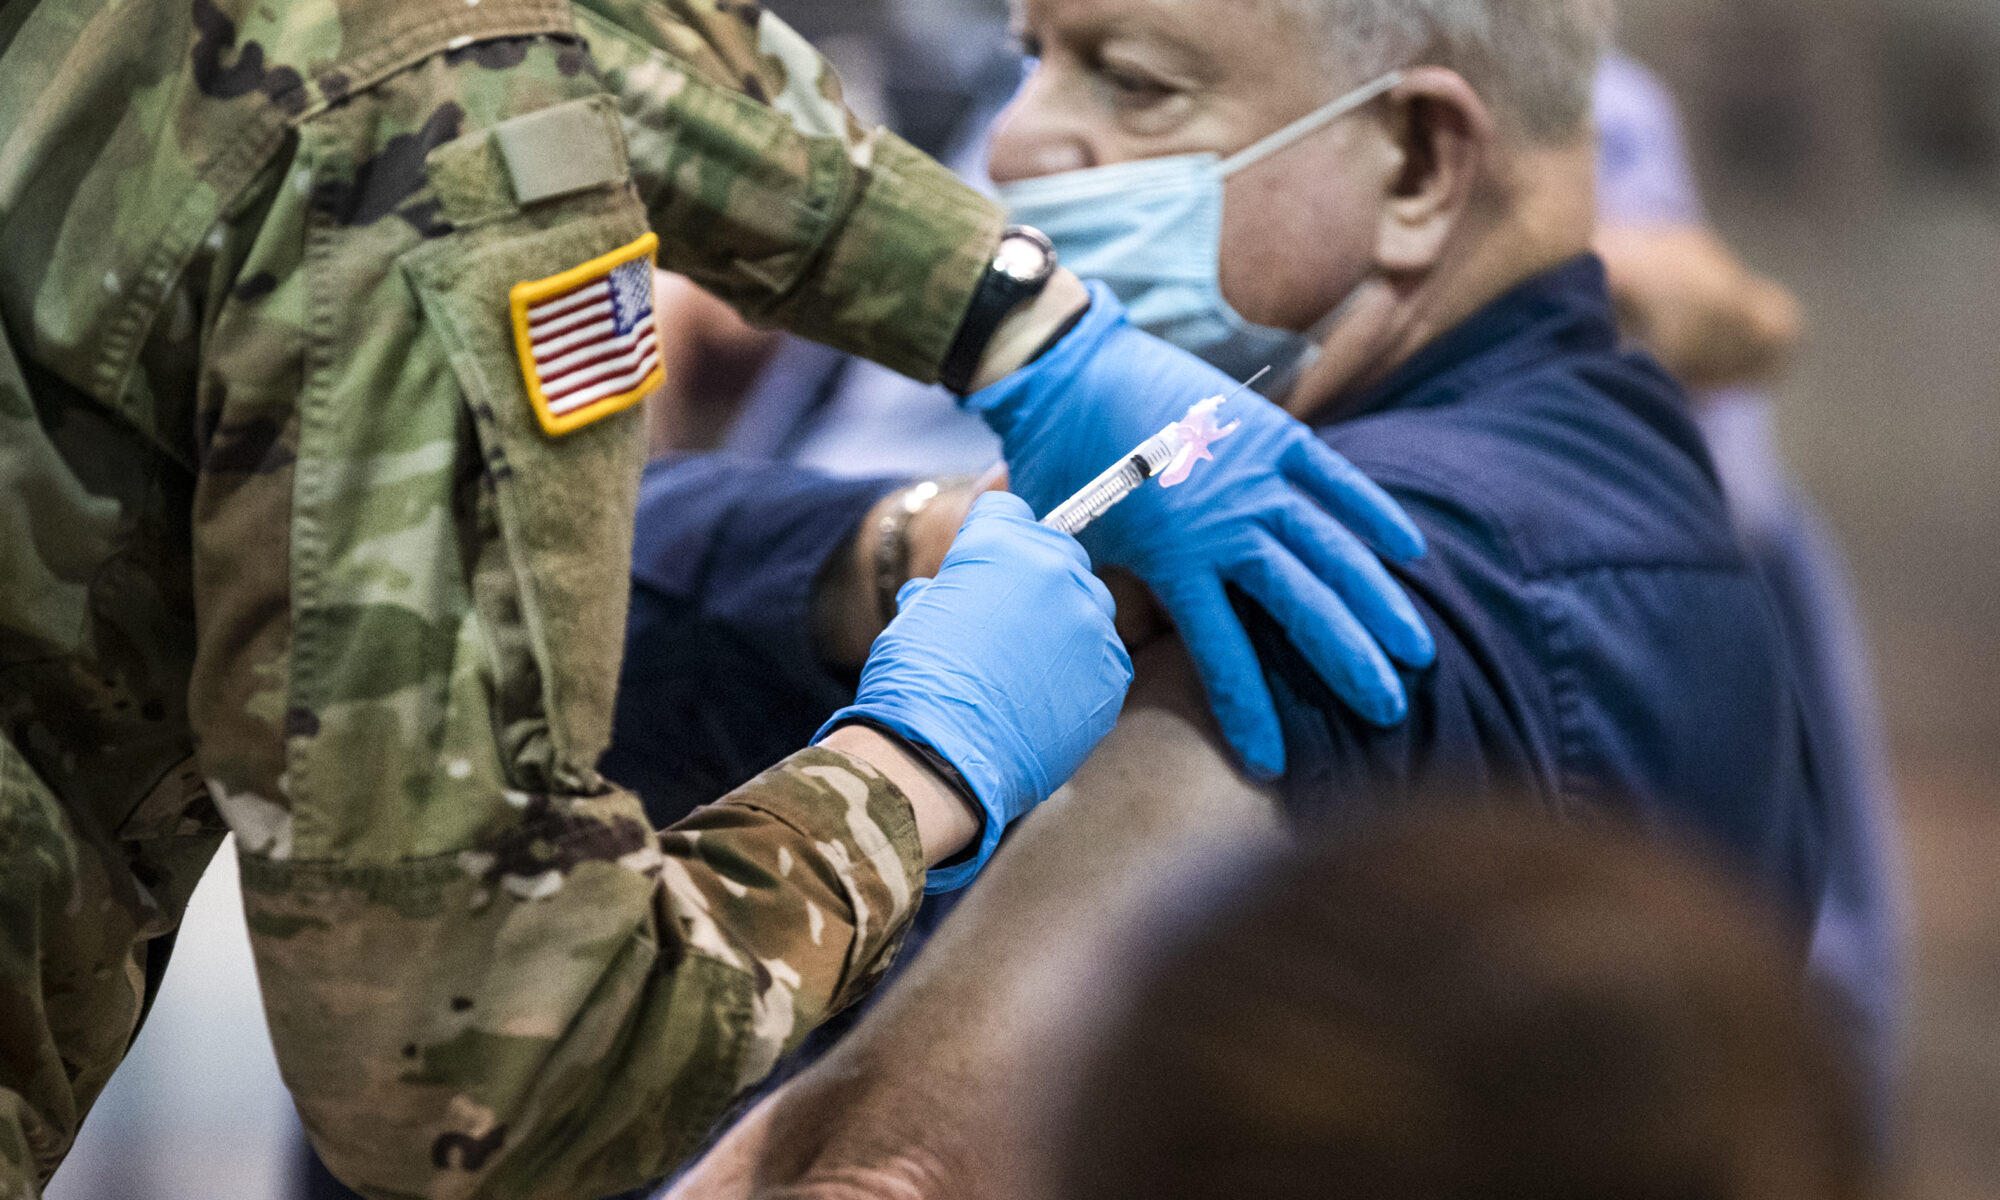 A National Guard member injects elderly man with COVID-19 vaccine